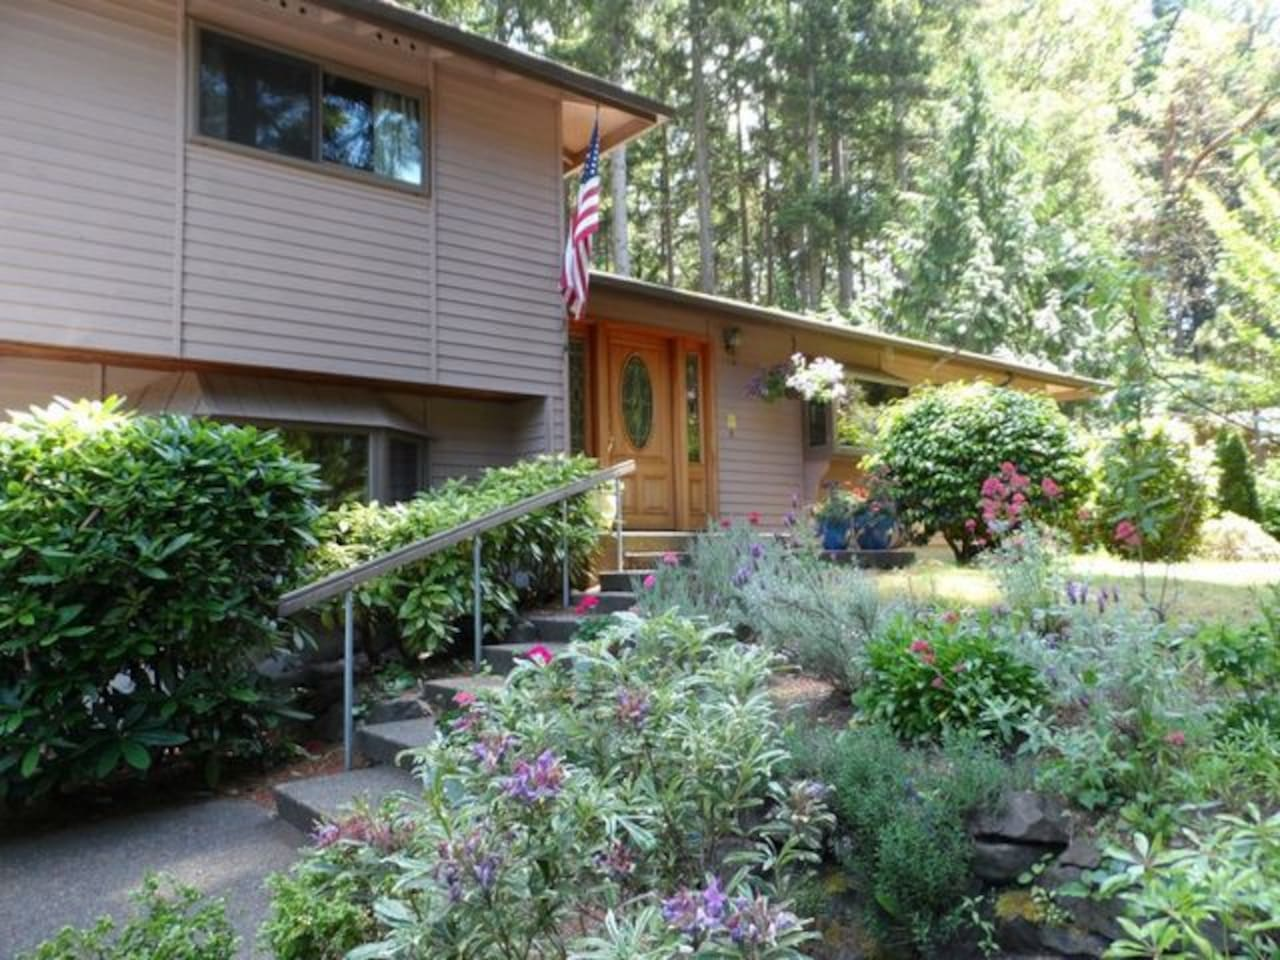 View of the front of the house when the garden is in full bloom.